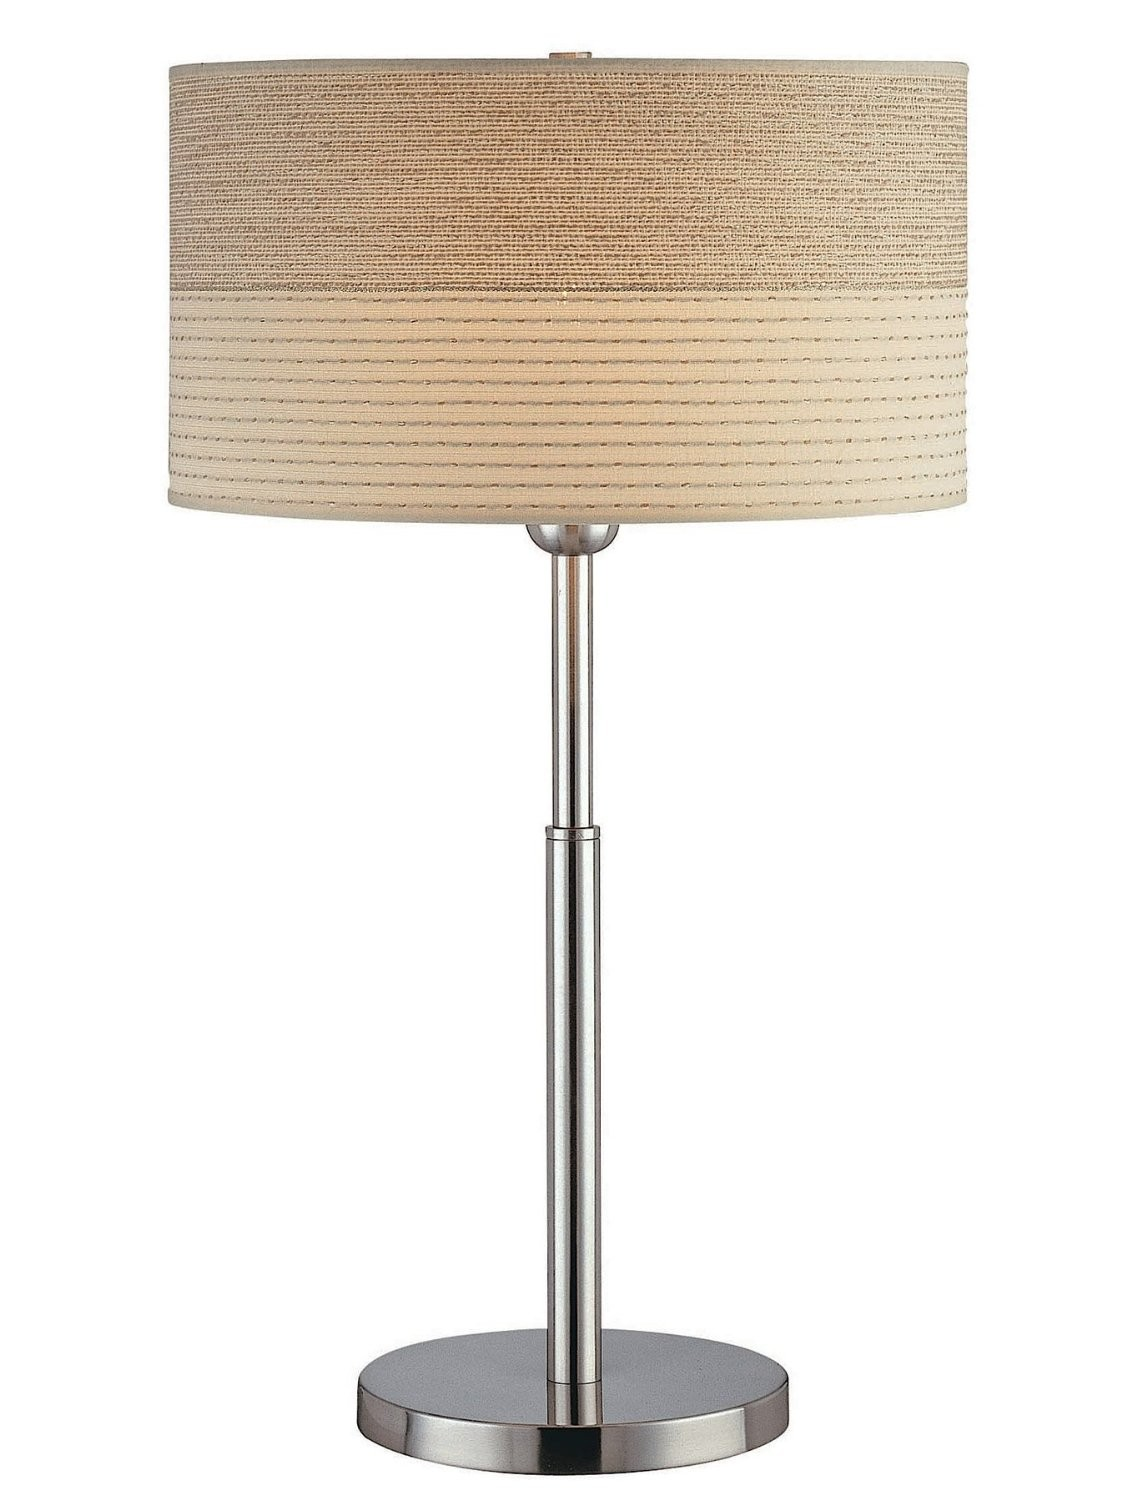 Orbis lighting exclusive design lamps and lighting montreal luxury table lamp contemporary table light with fabric shade geotapseo Image collections